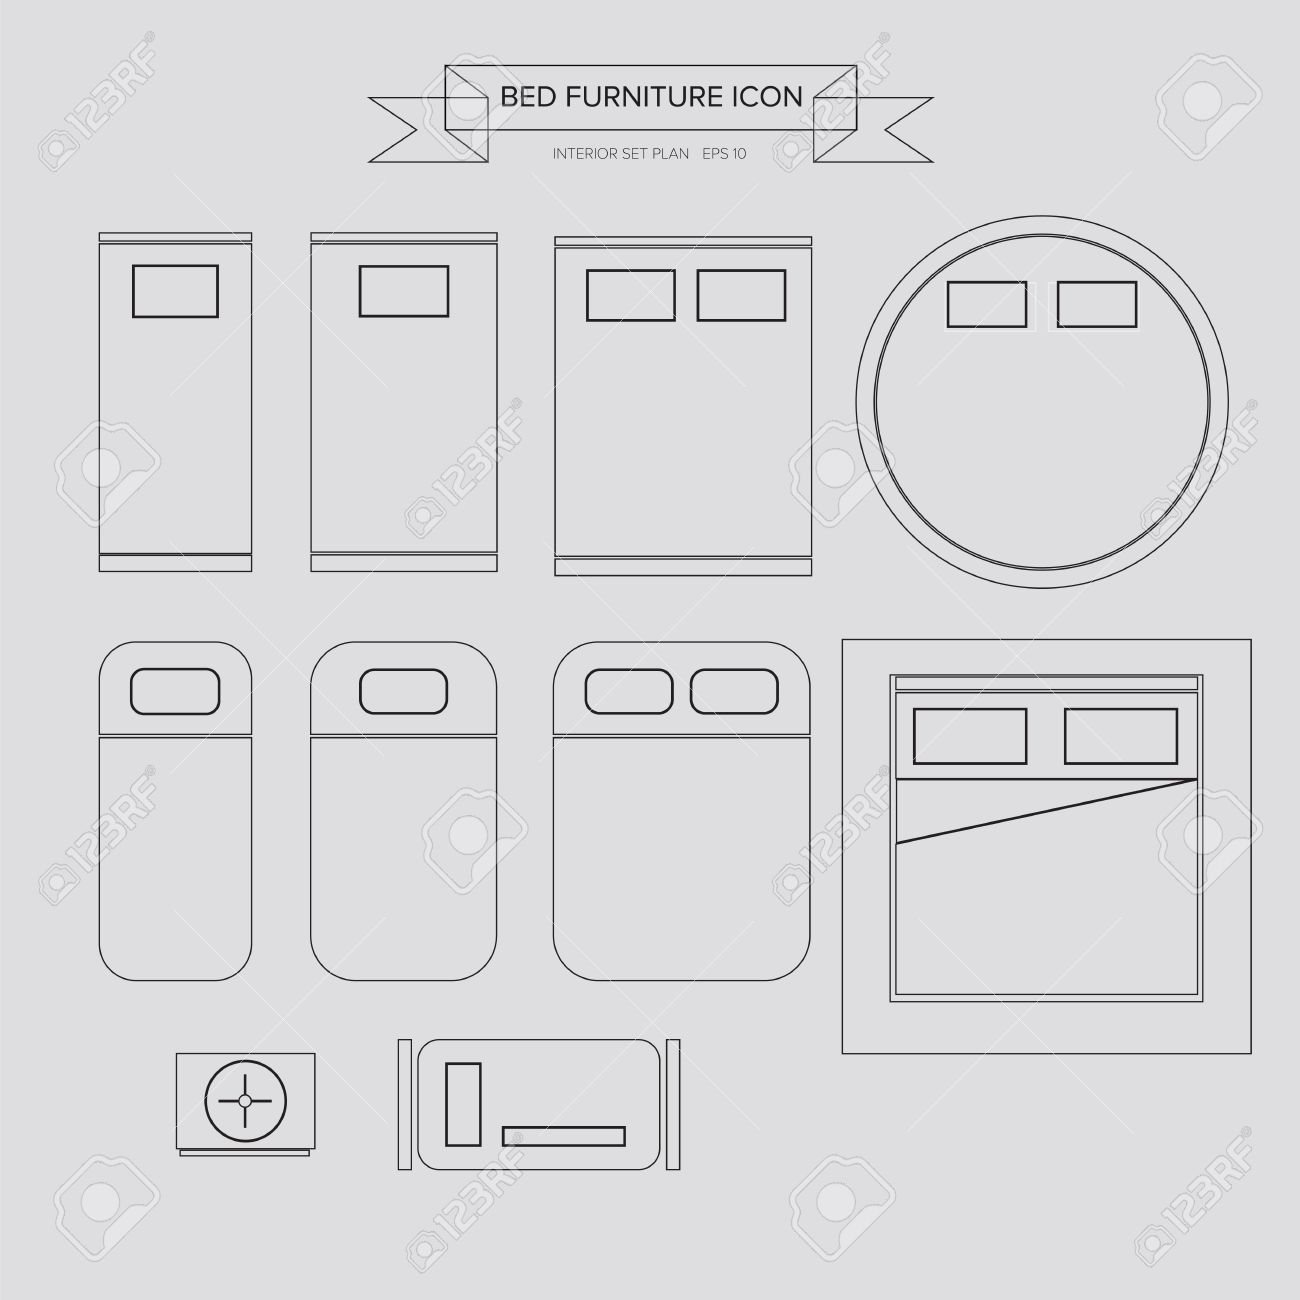 Bed design top view image - Bed Furniture Outline Icon Top View For Interior Plan Stock Vector 31591933